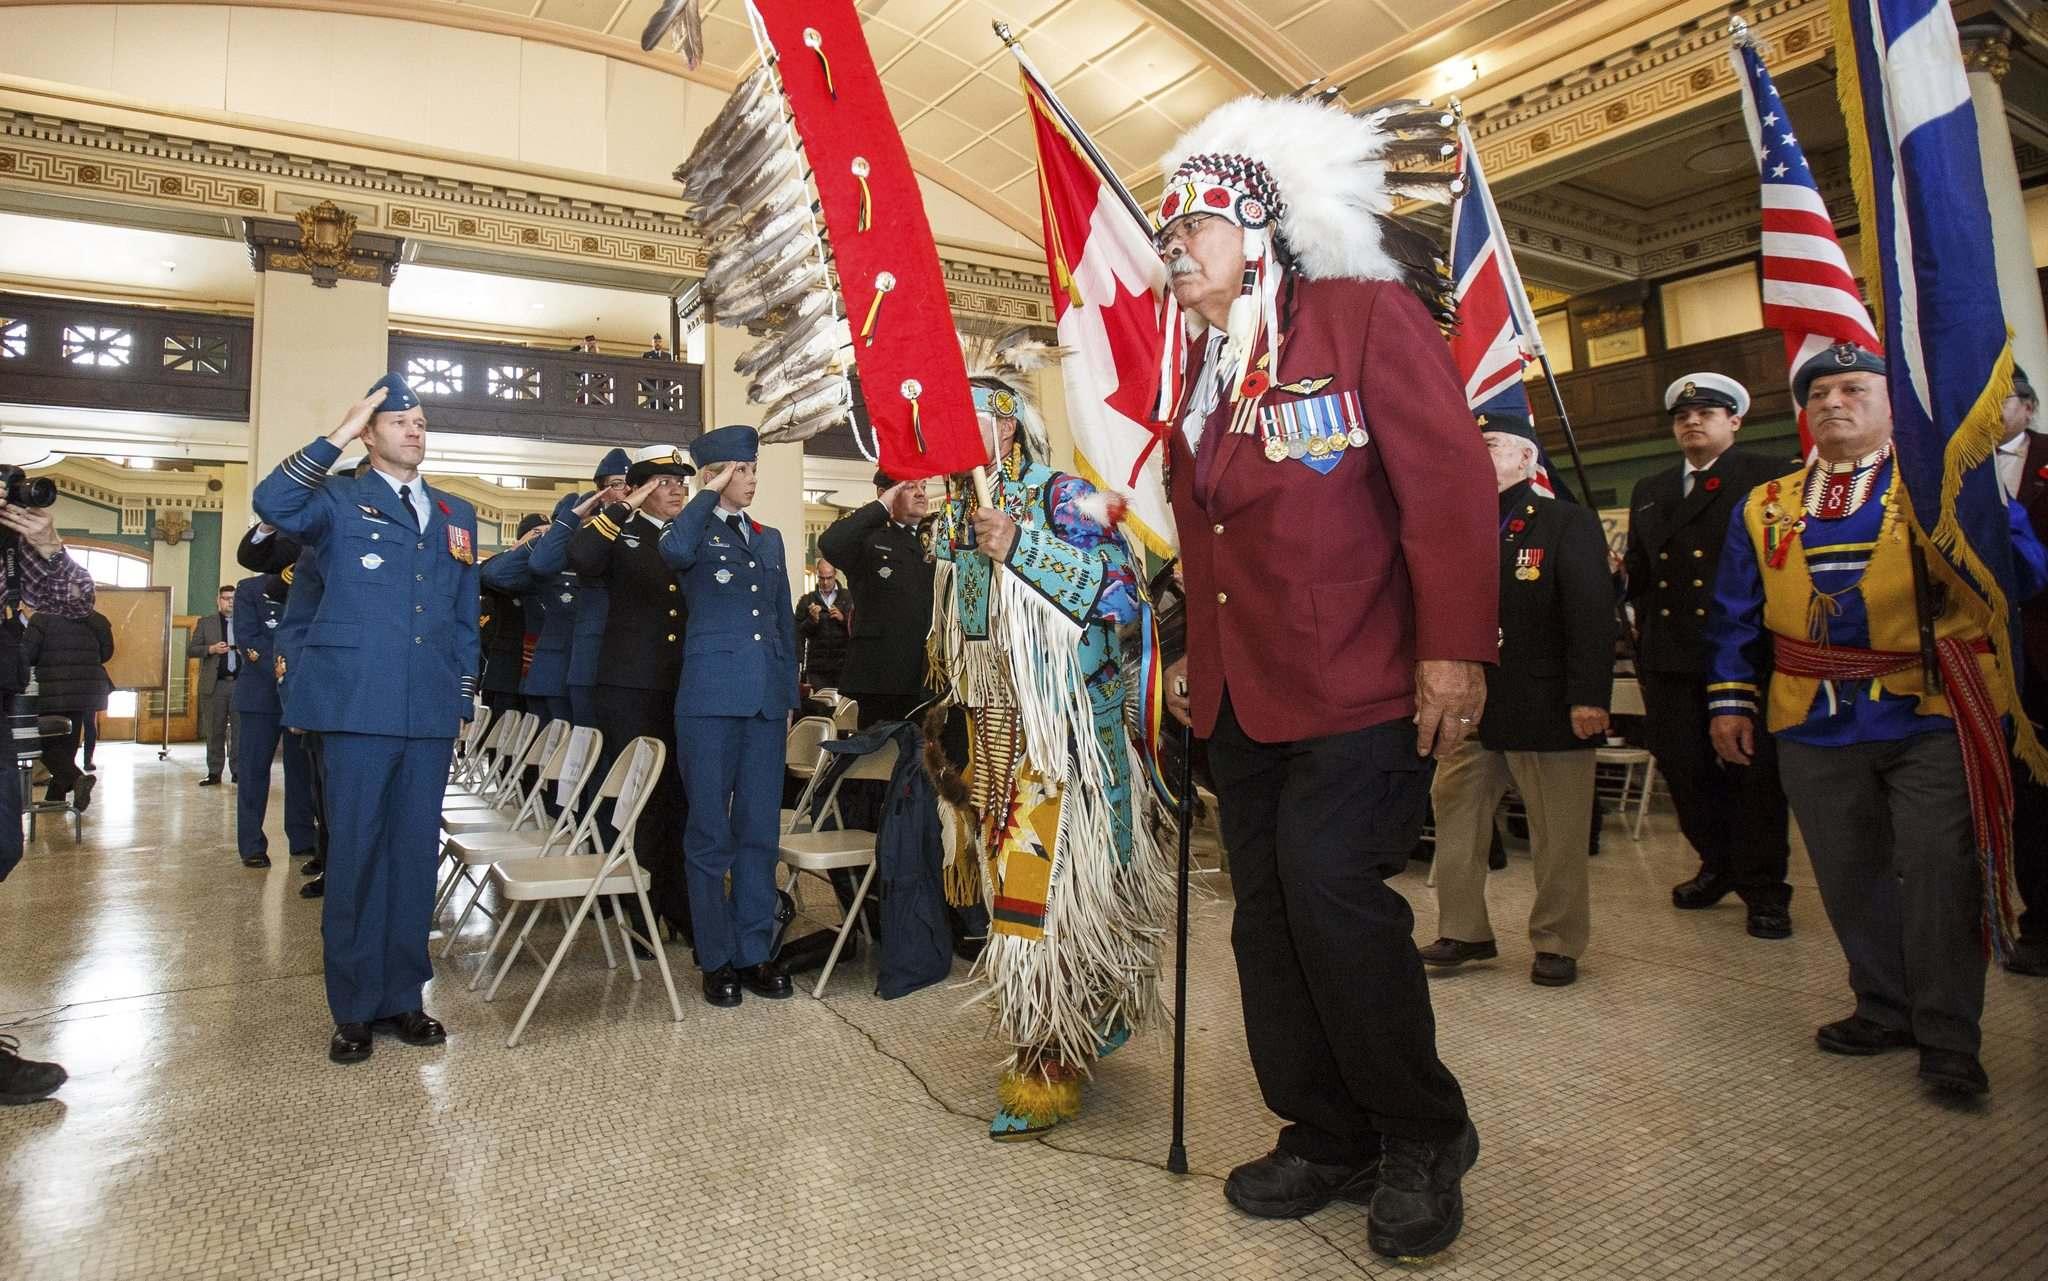 MIKE DEAL / WINNIPEG FREE PRESSJoe Meconse, 77, a Dene veteran from the Churchill area, leads the group of Aboriginal veterans at Thursday&#39;s ceremony.</p>